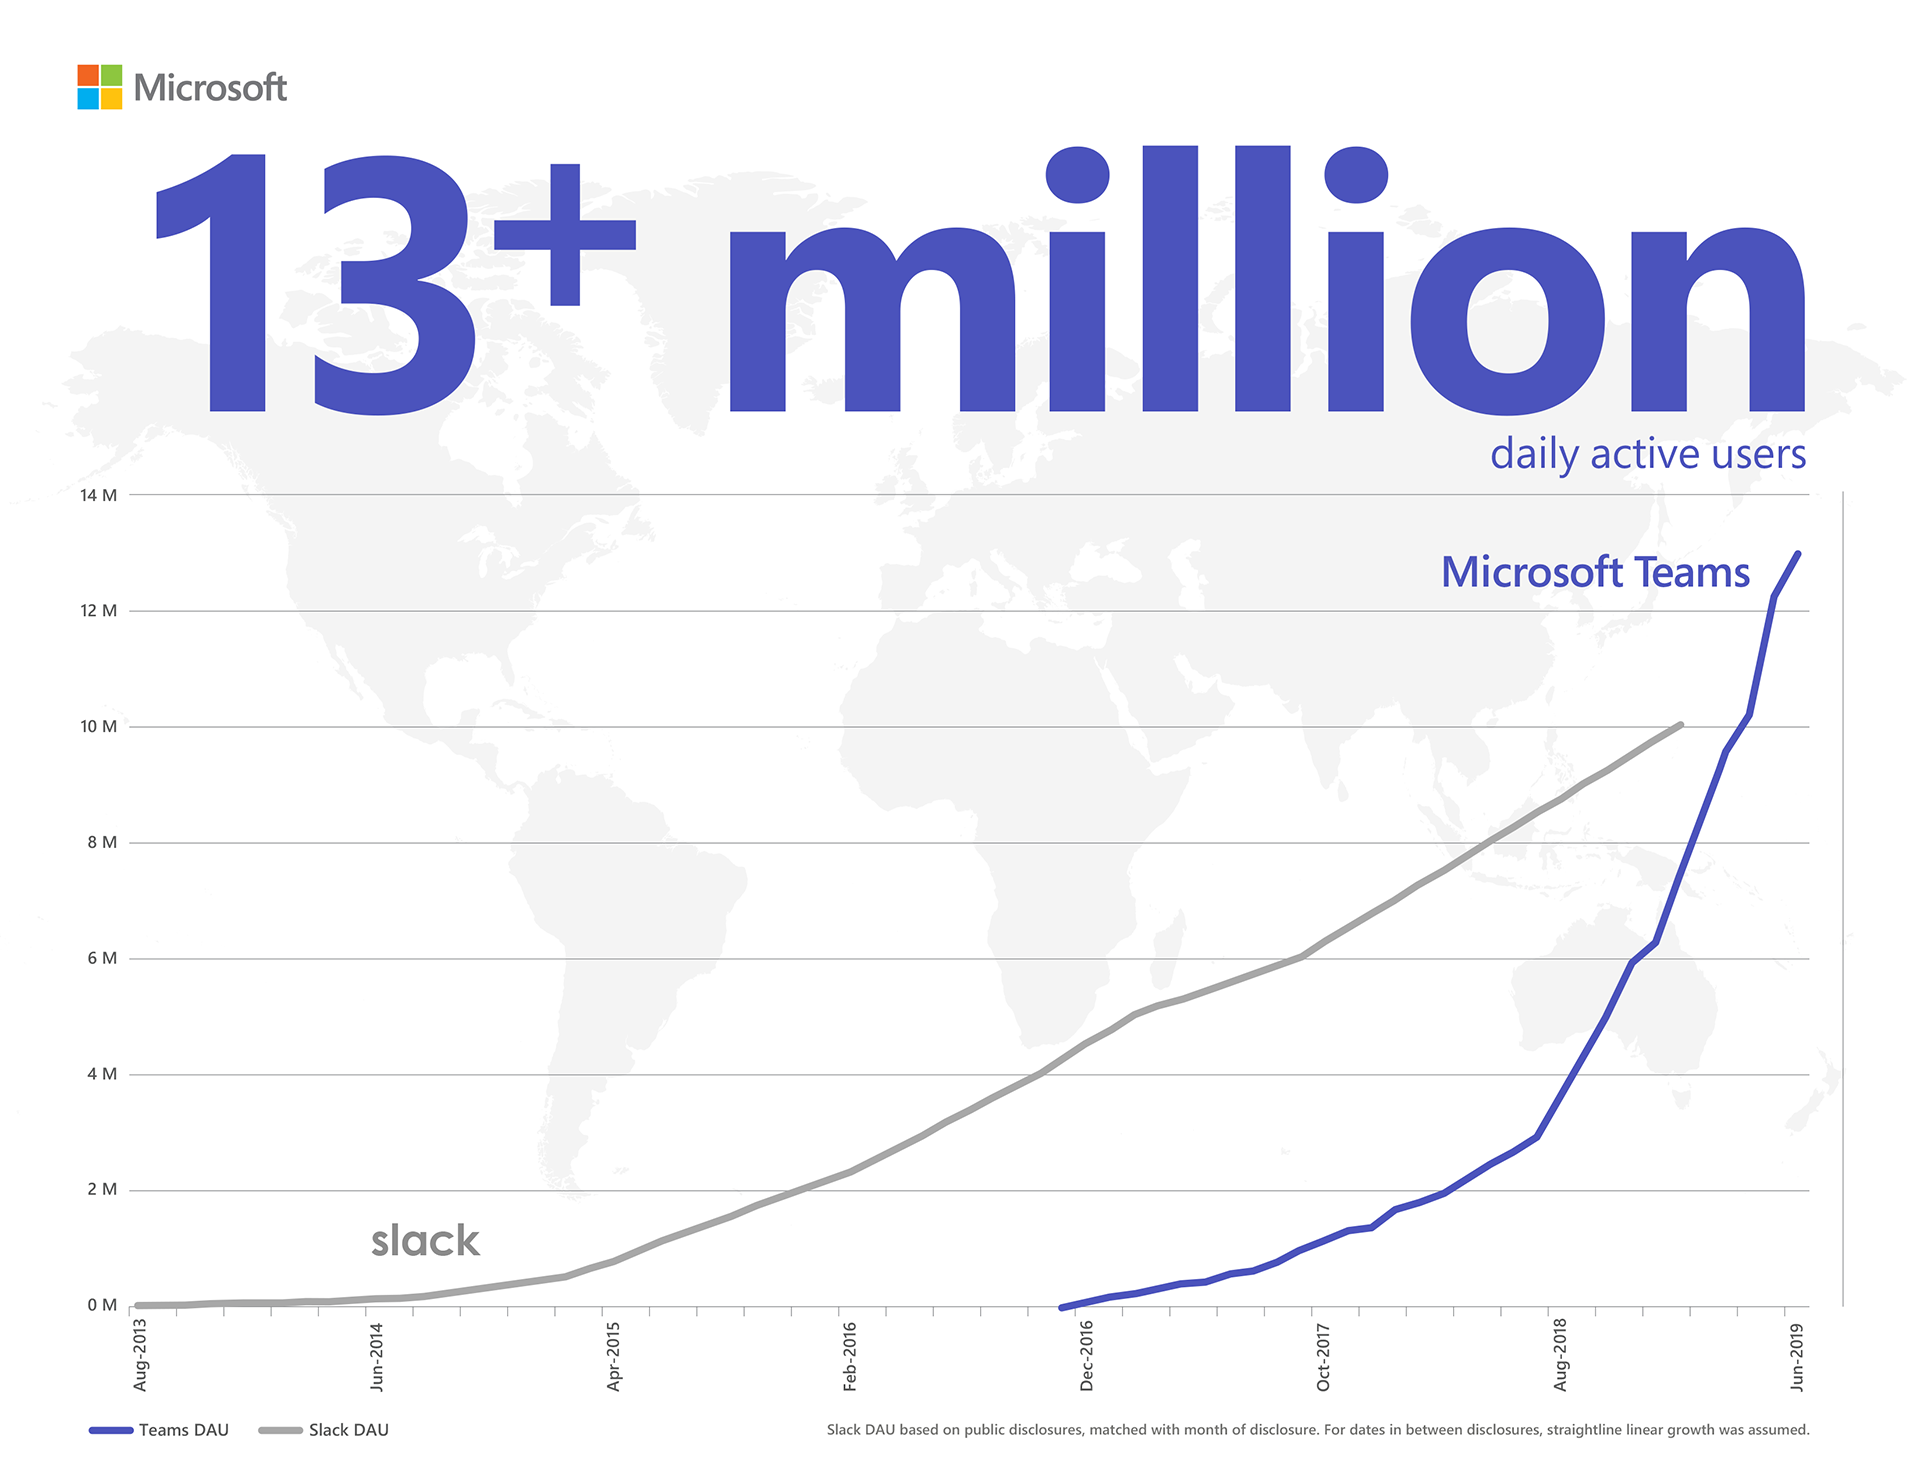 Infographic showing Microsoft Teams outpacing Slack in daily active users with 13+ million. Slack DAU based on public disclosures, matched with month of disclosure. For dates between disclosures, straightline linear growth was assumed.